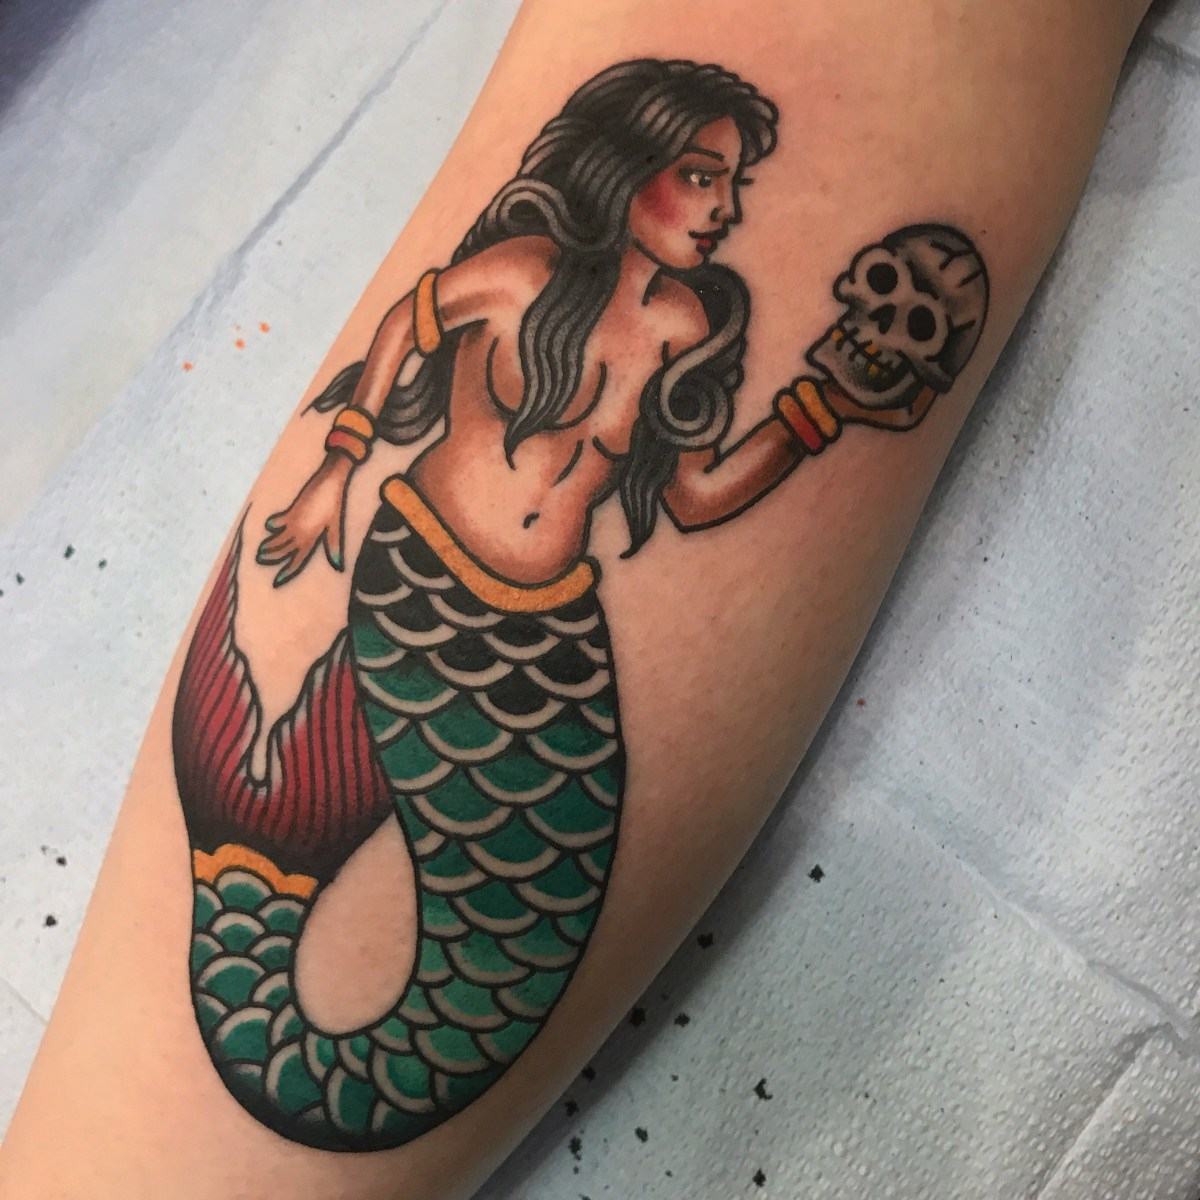 Mermaid and some other lady tattoos!